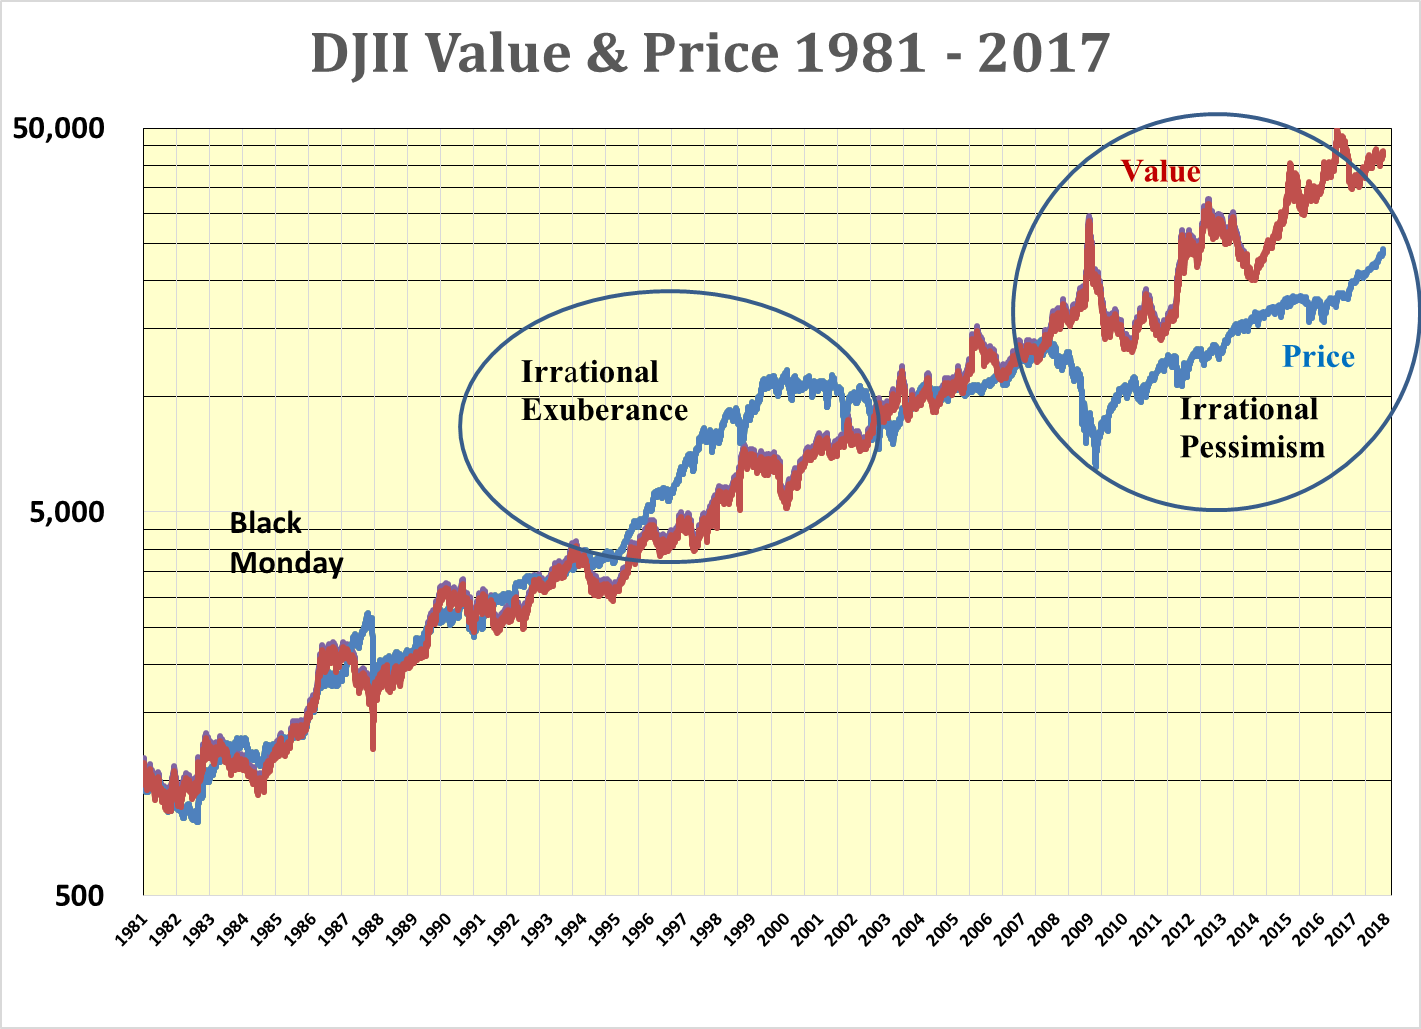 Djia Quote Rebalancing Is Slowing The Rise Of Djia Price But Santa's On His